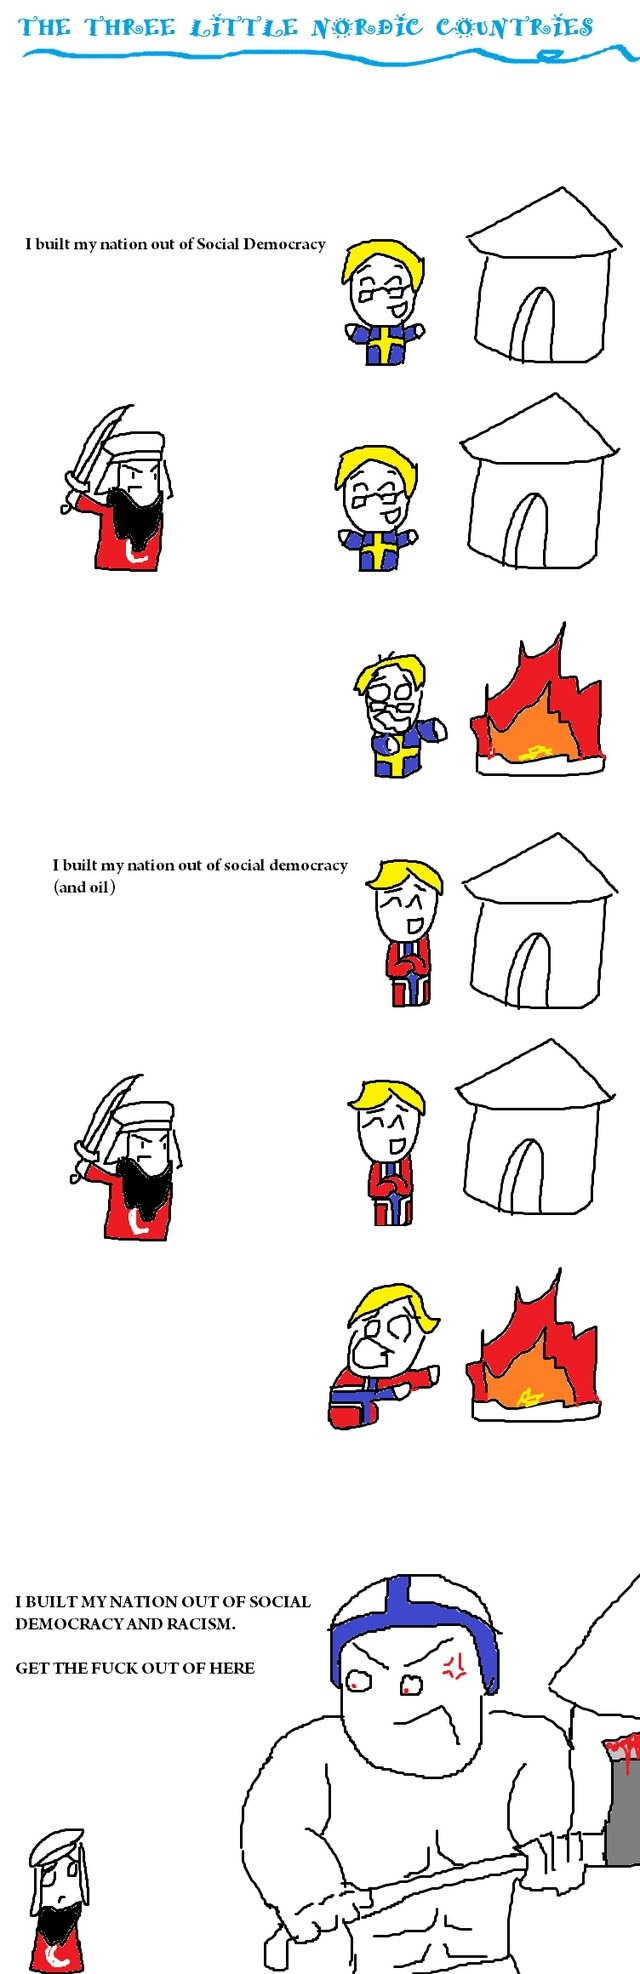 The Three little nordic countries. . I built my nation out official democracy and oil) I BUILT MY NATI ON OUT OF Sollux,,, DEMOCRACY AND RACI SM. GET THE FUCK O